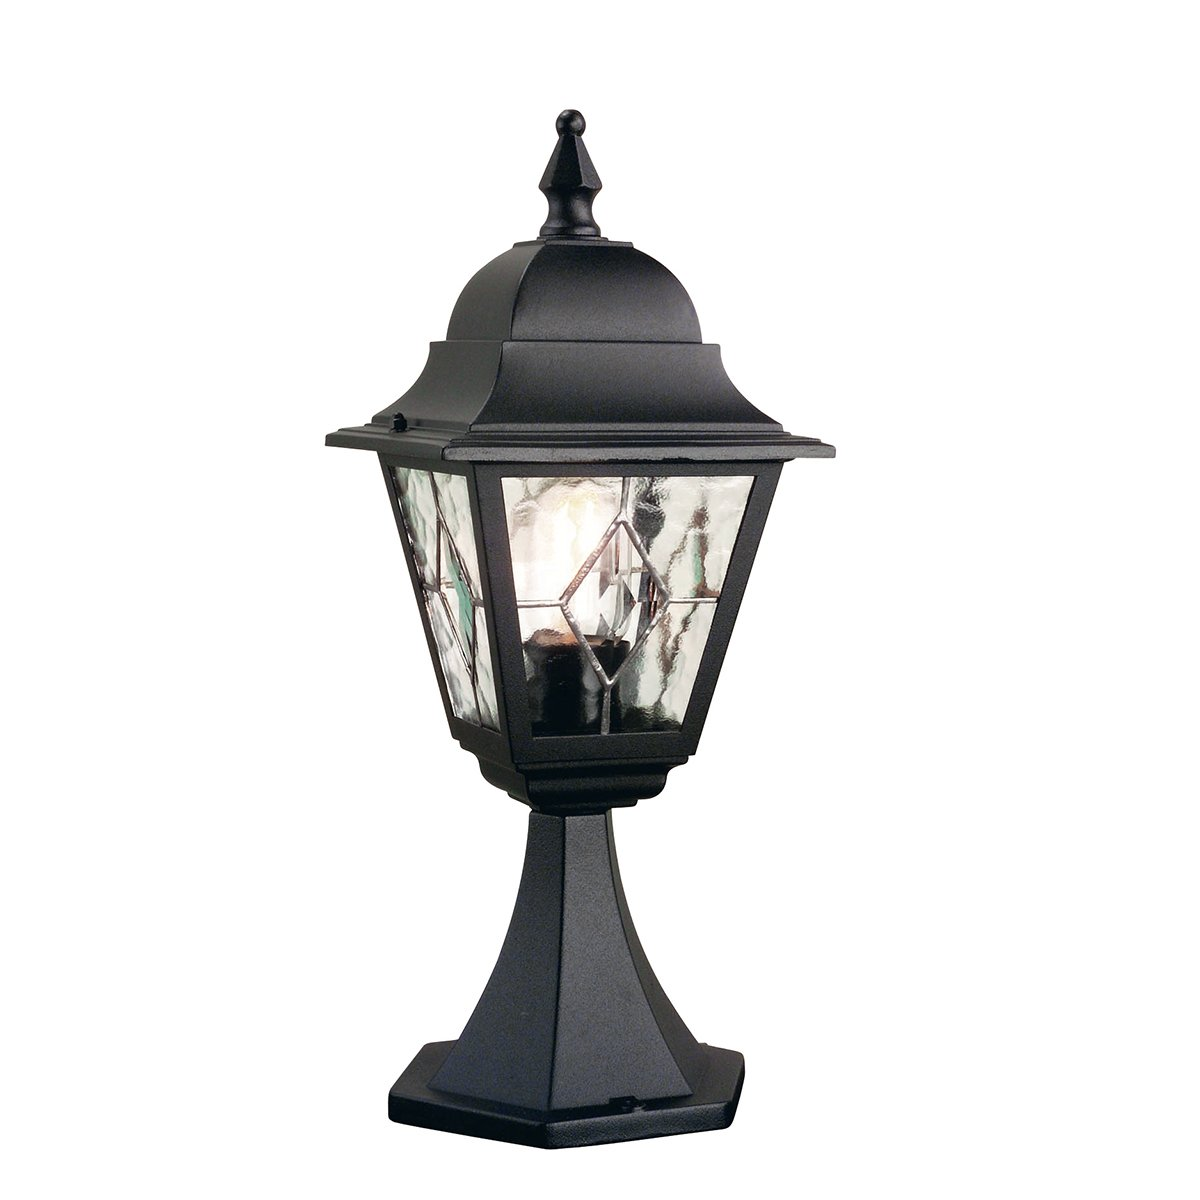 Elstead NR3 Norfolk Pedestal Leaded Lantern in Black